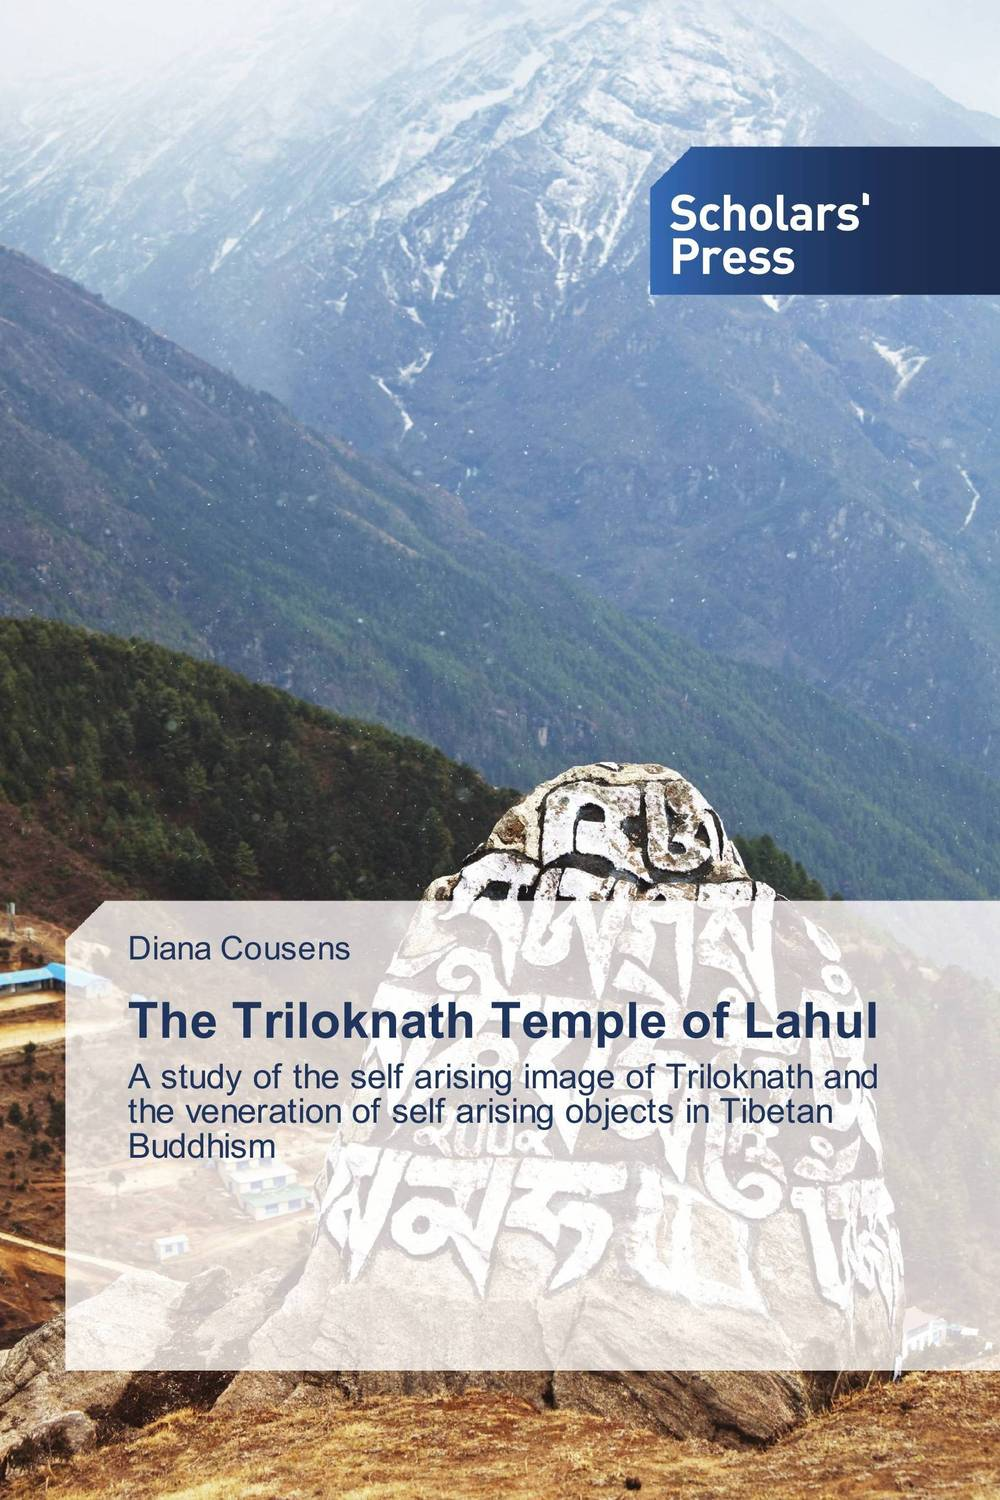 The Triloknath Temple of Lahul god s mountain – the temple mount in time place and memory